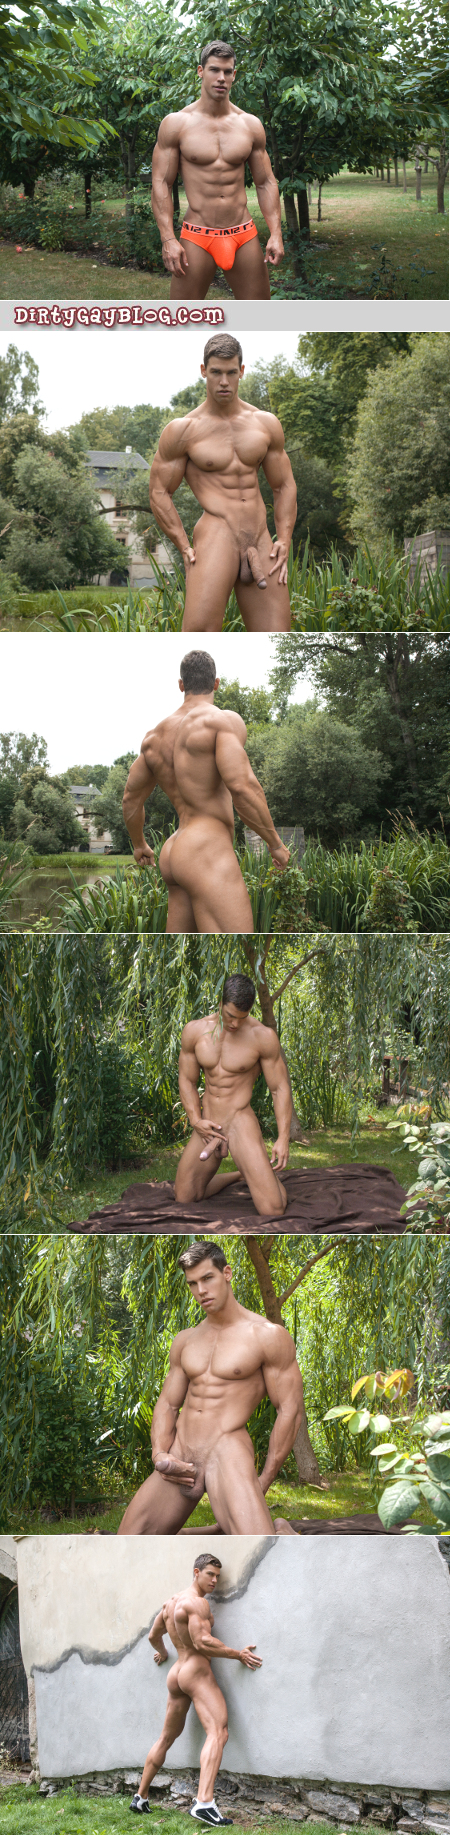 Well-Hung muscle stud showing off his bodybuilder body and veiny horse cock.